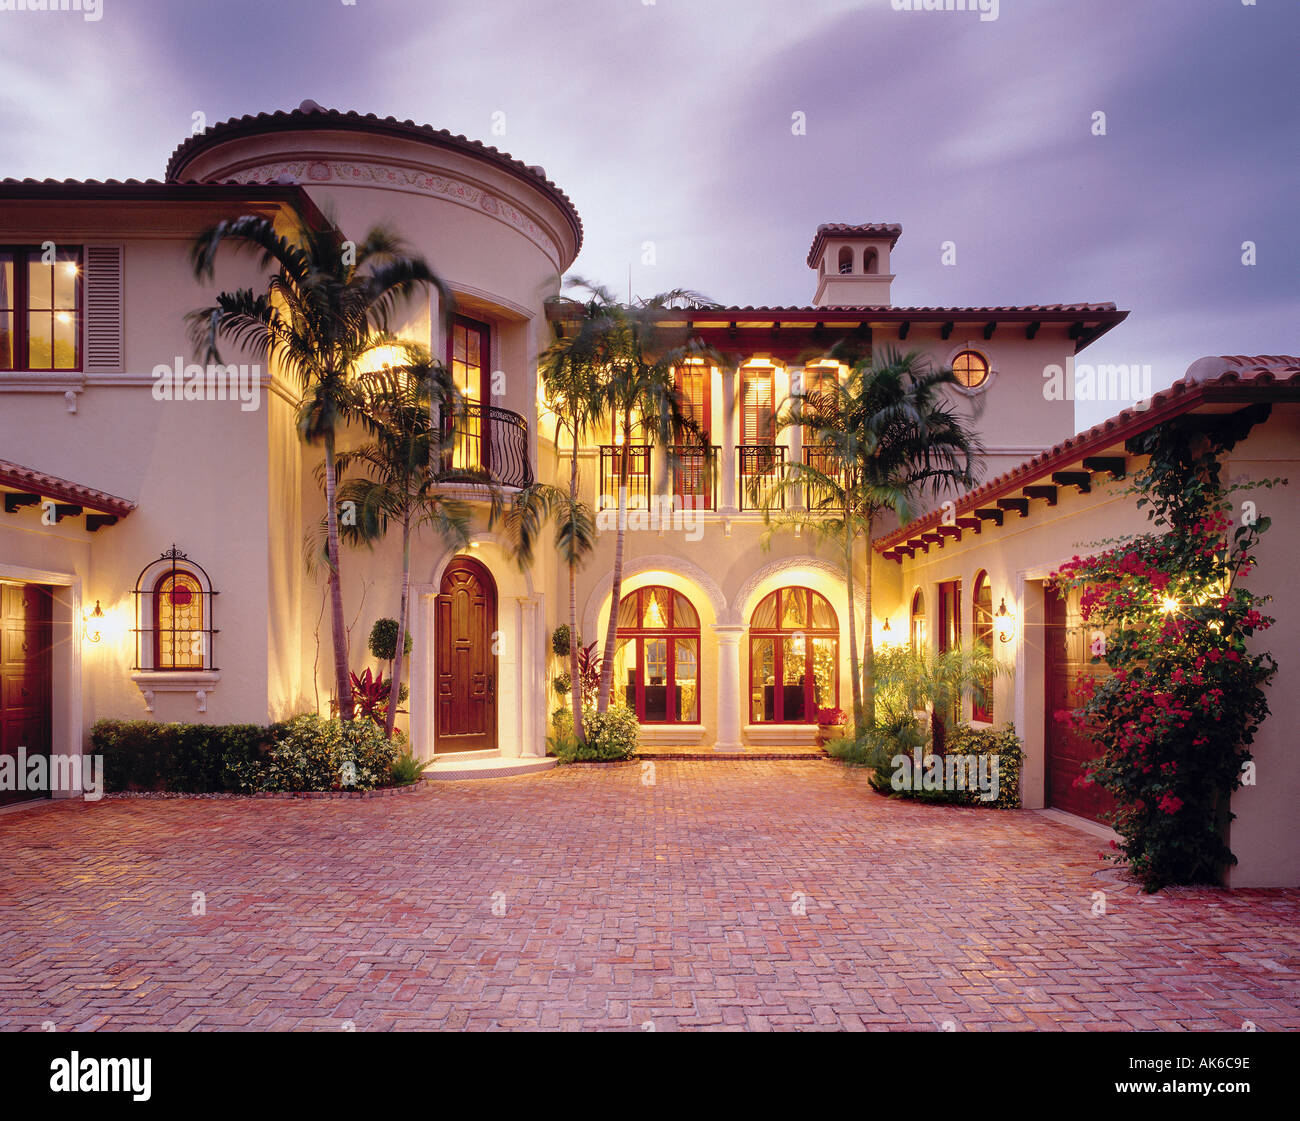 Mediterranean single family home with brick courtyard in Boca Raton, Florida. Features bougainvillea plants and palm trees. - Stock Image